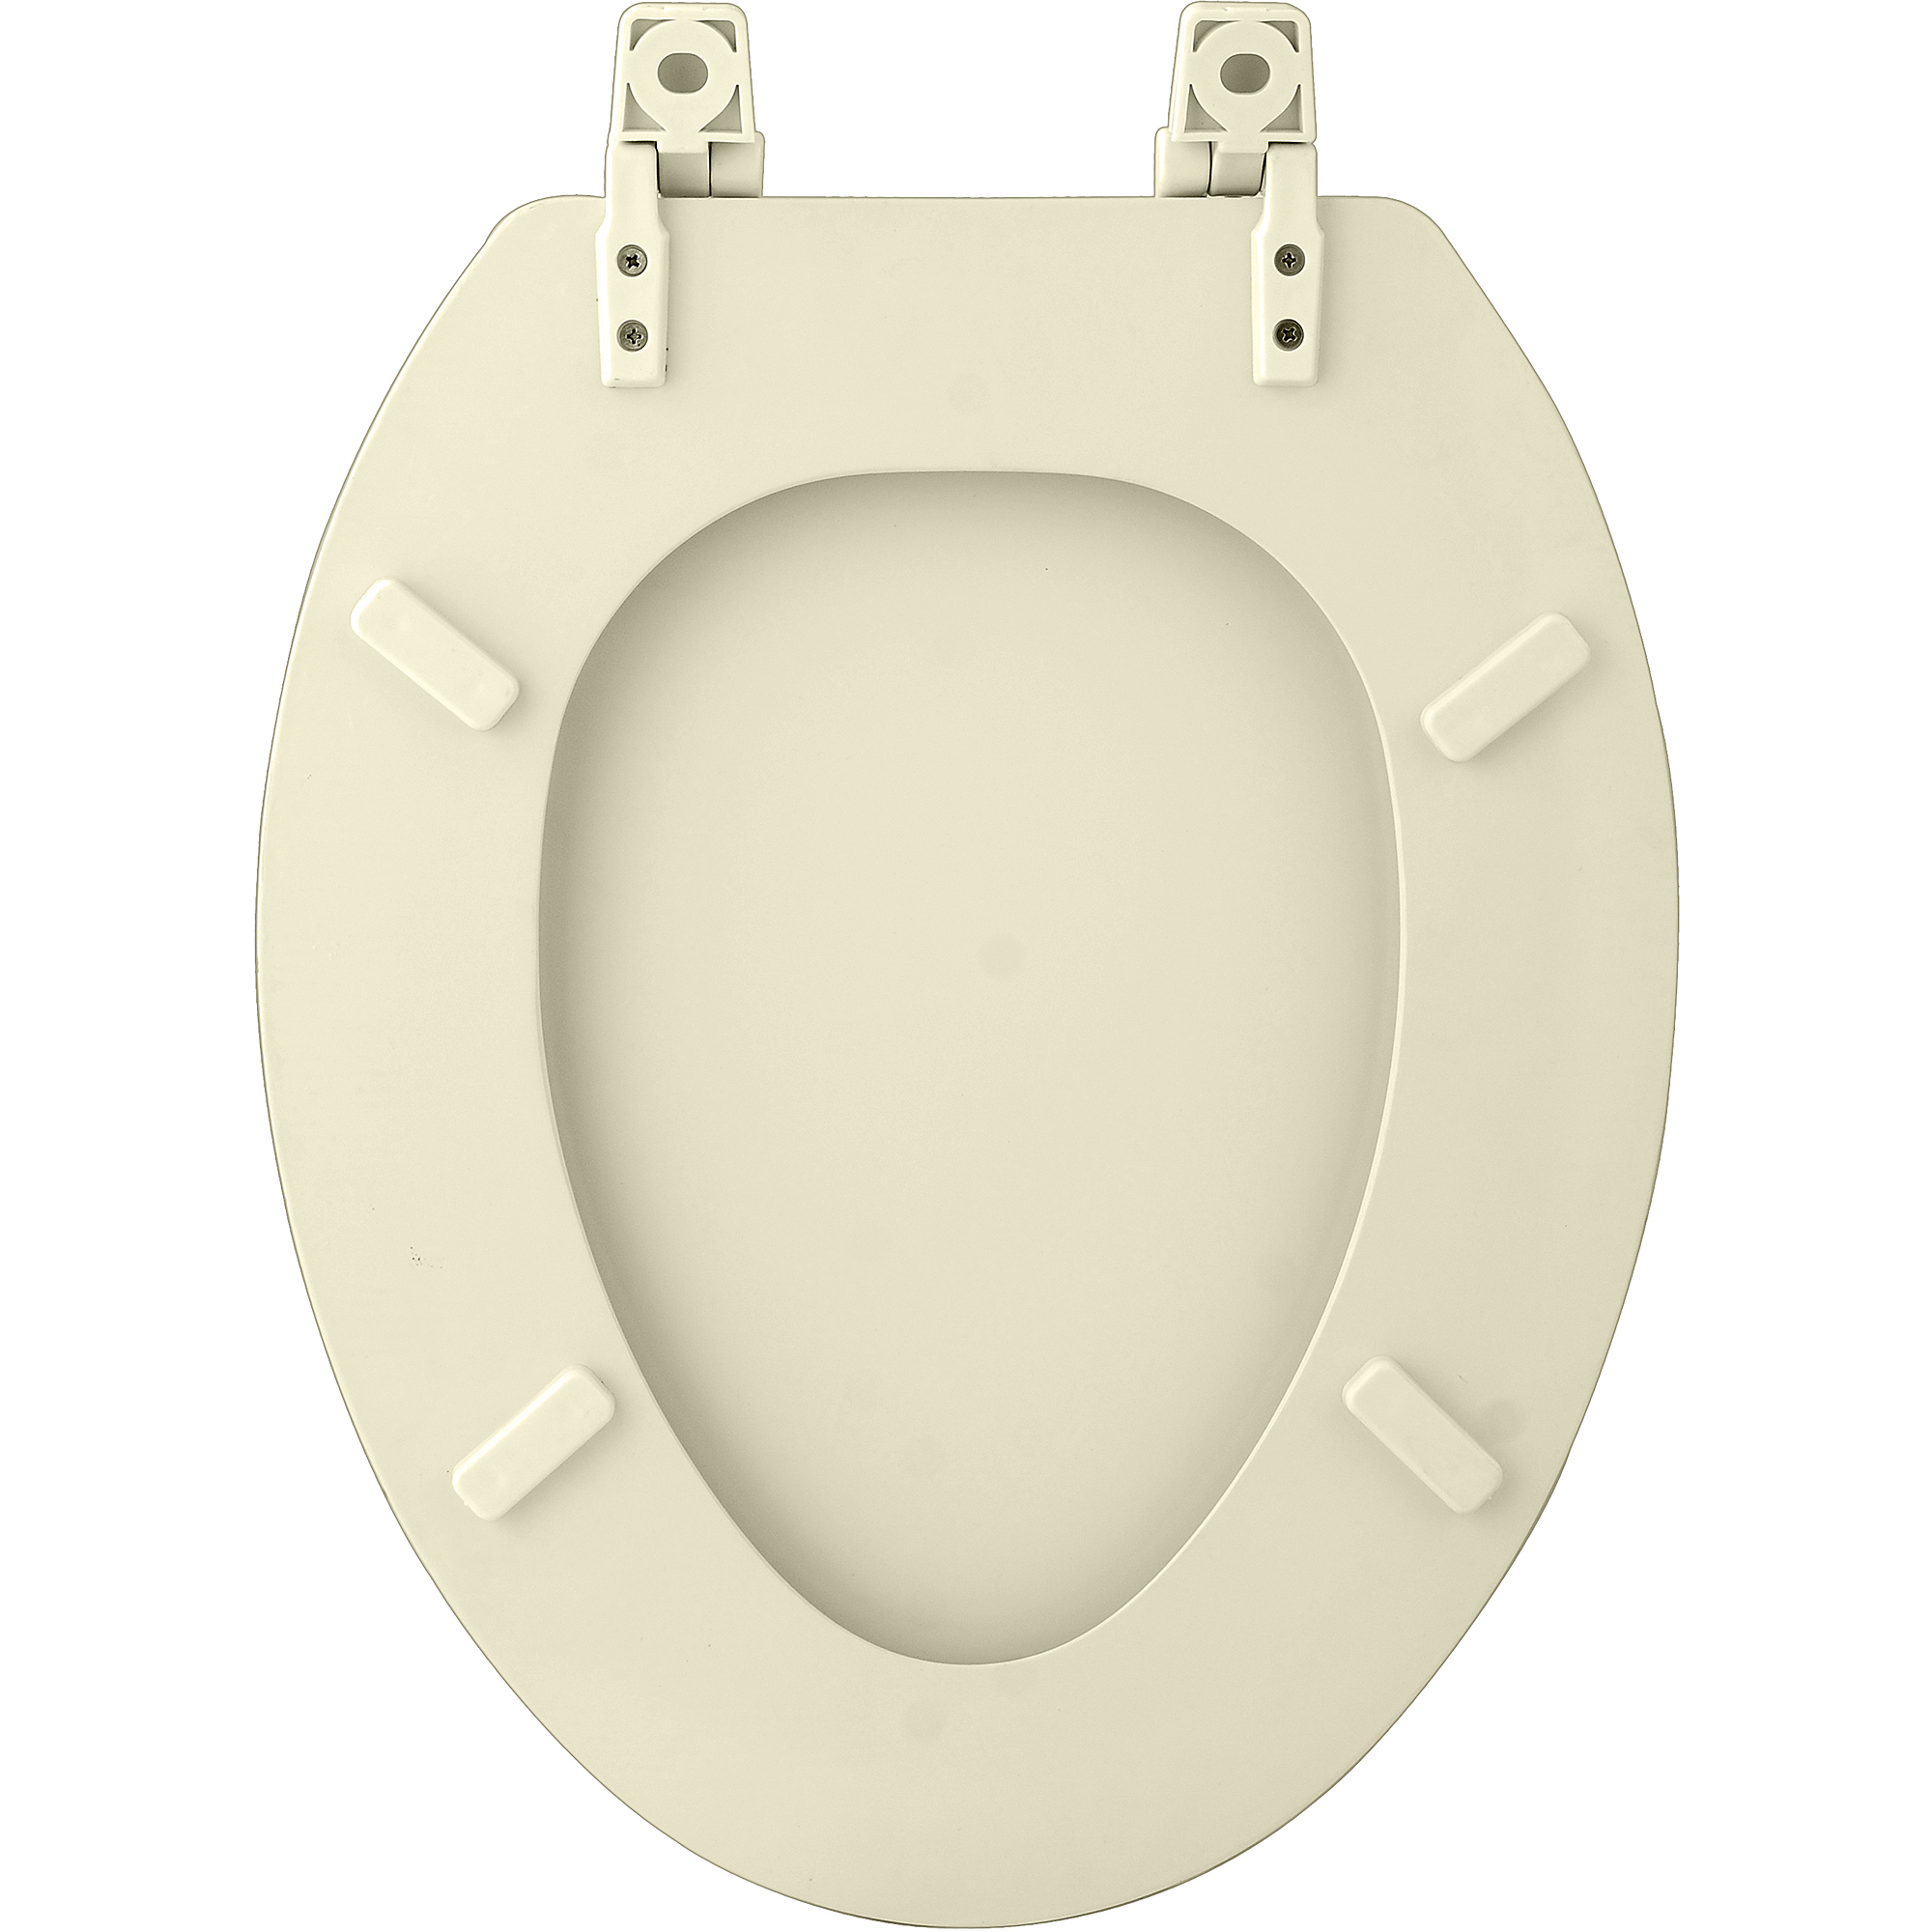 Wood Toilet Seat Walmart.Fantasia 19 Elongated Wood Toilet Seat Walmart Com